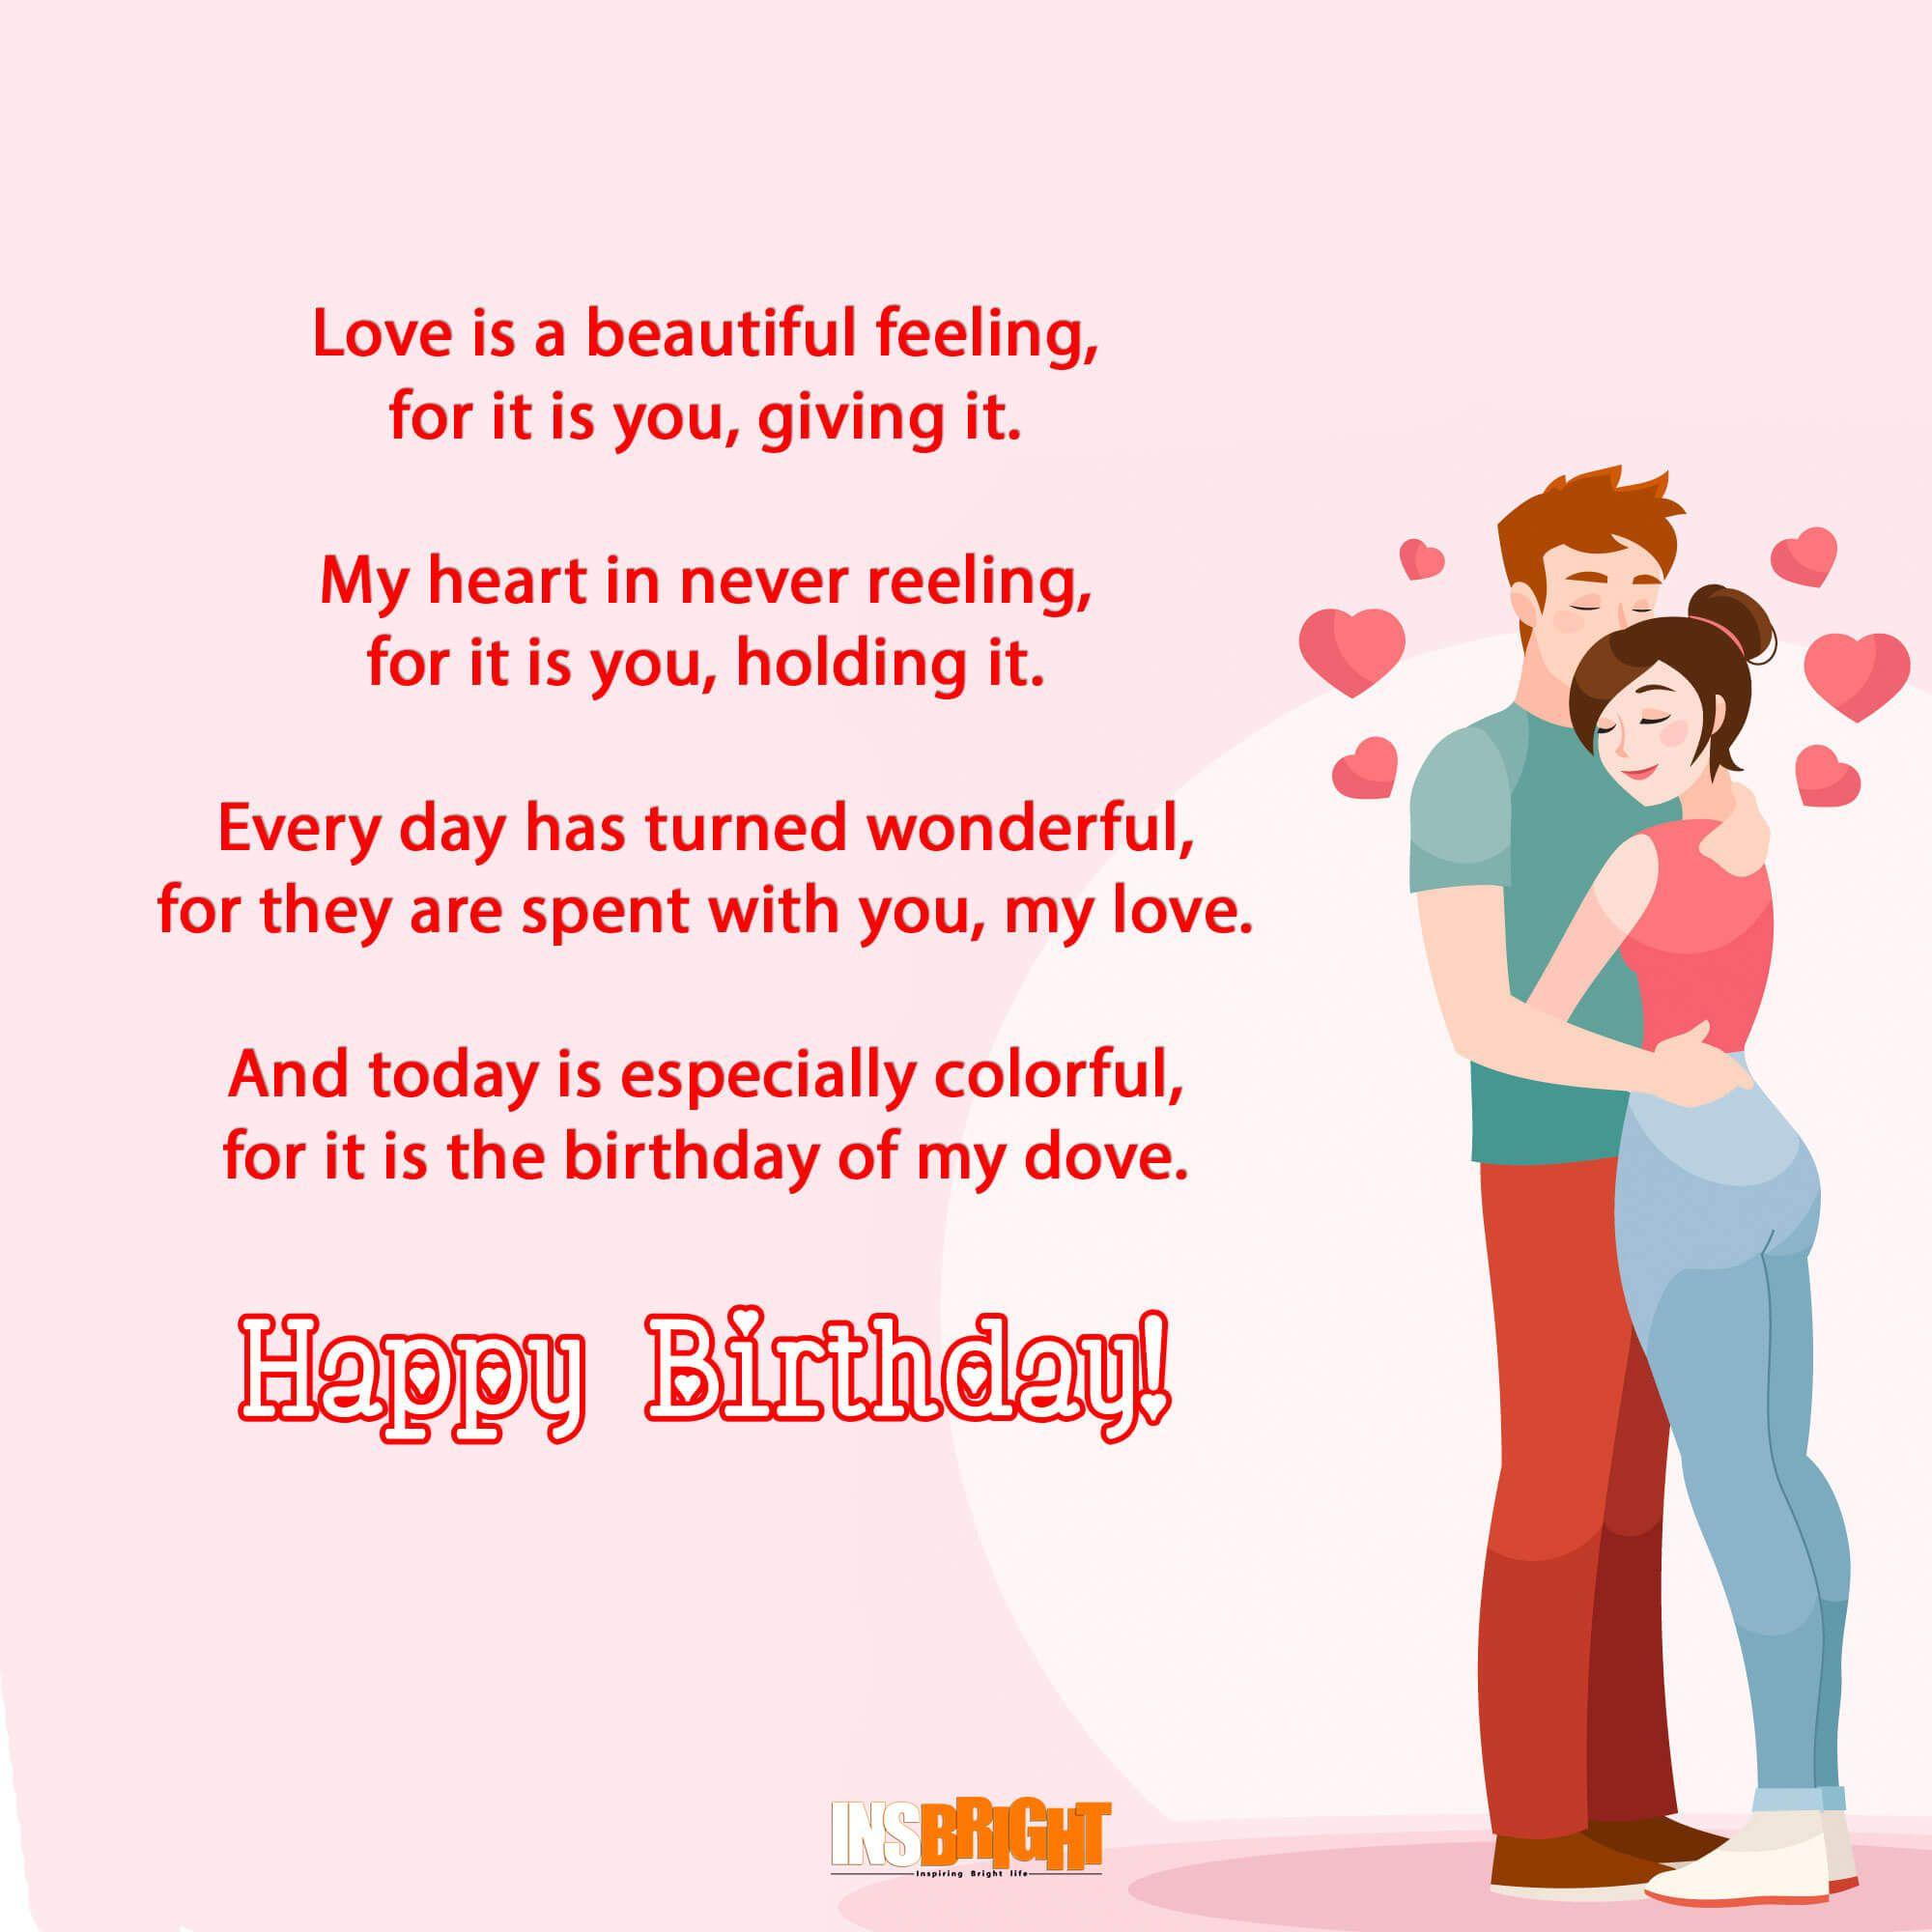 Birthday wishes for my wife